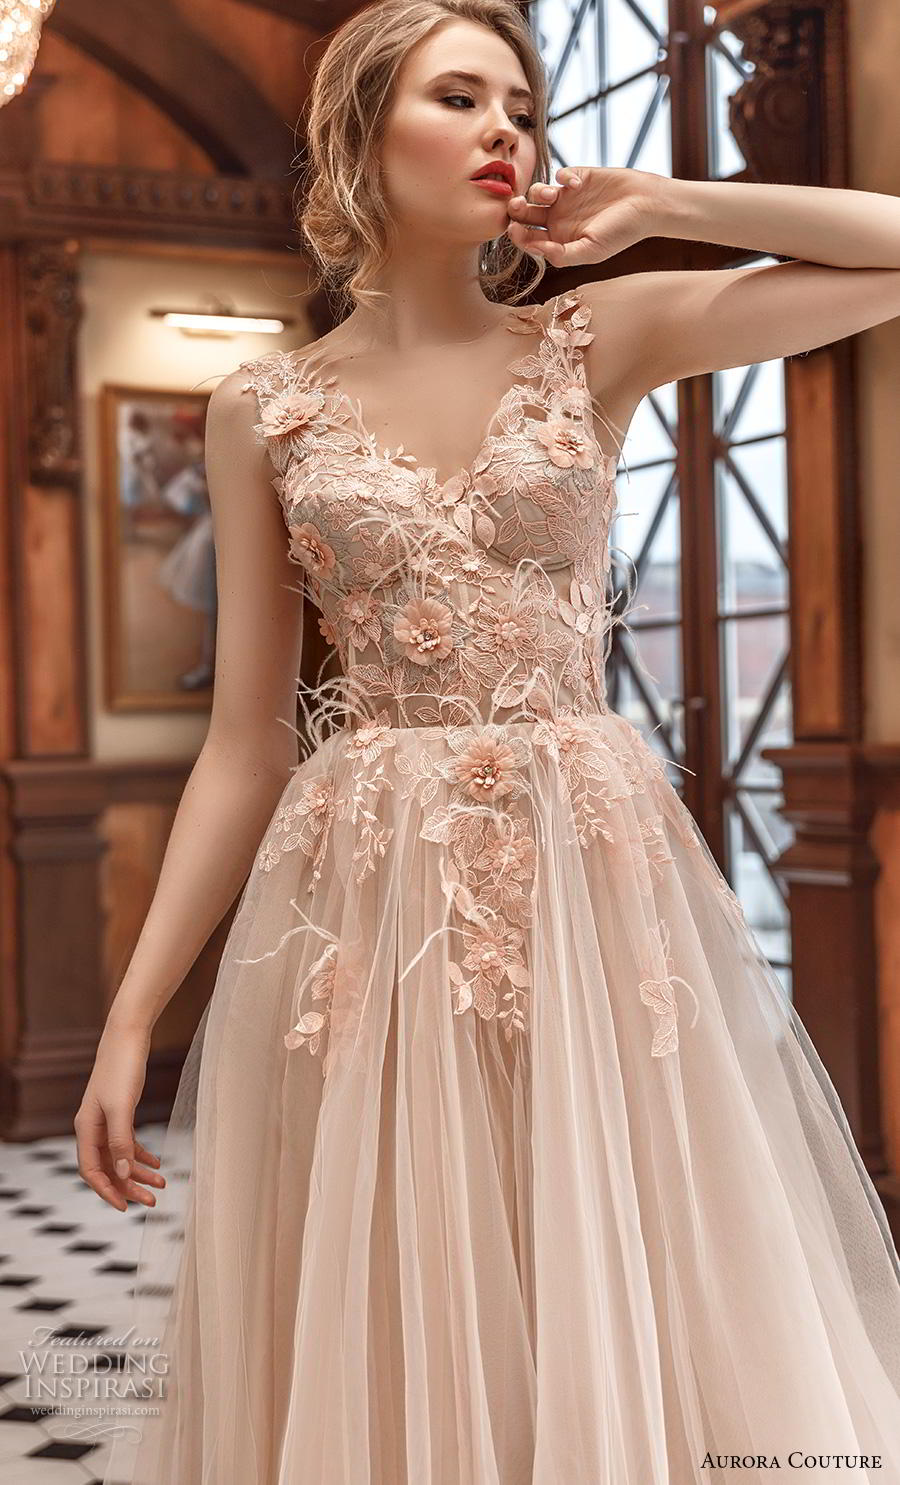 aurora couture 2019 bridal sleeveless with strap v neck heavily embellished bodice bustier tulle skirt romantic blush ball gown a  line wedding dress (13) zv